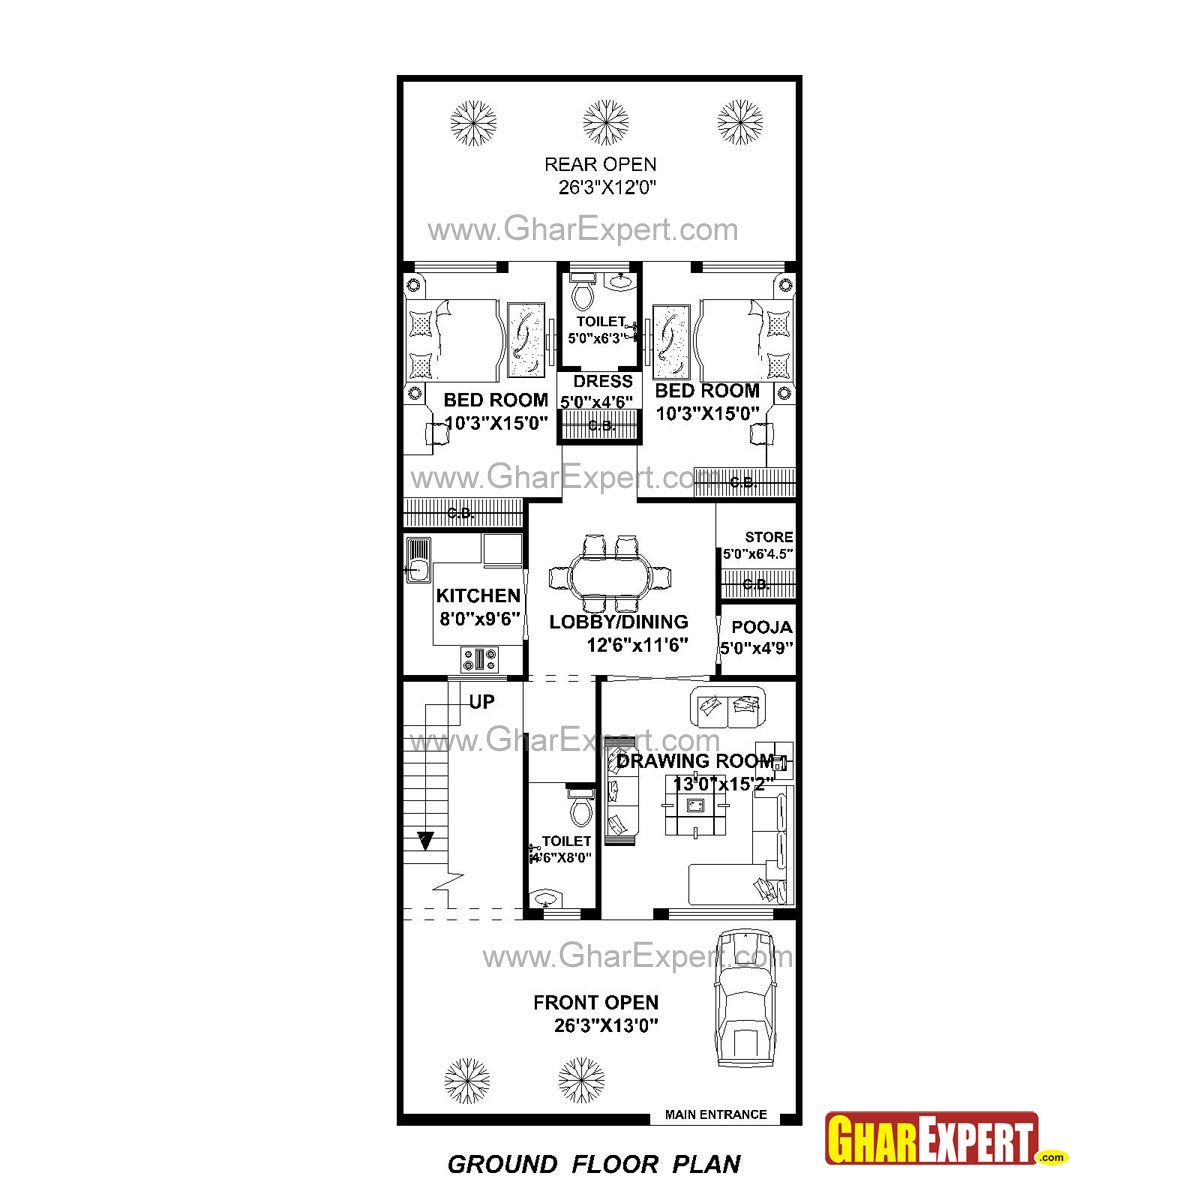 House Plan For 27 Feet By 70 Feet Plot Plot Size 210 Square Yards Gharexpert Com In 2020 House Plans How To Plan Ground Floor Plan